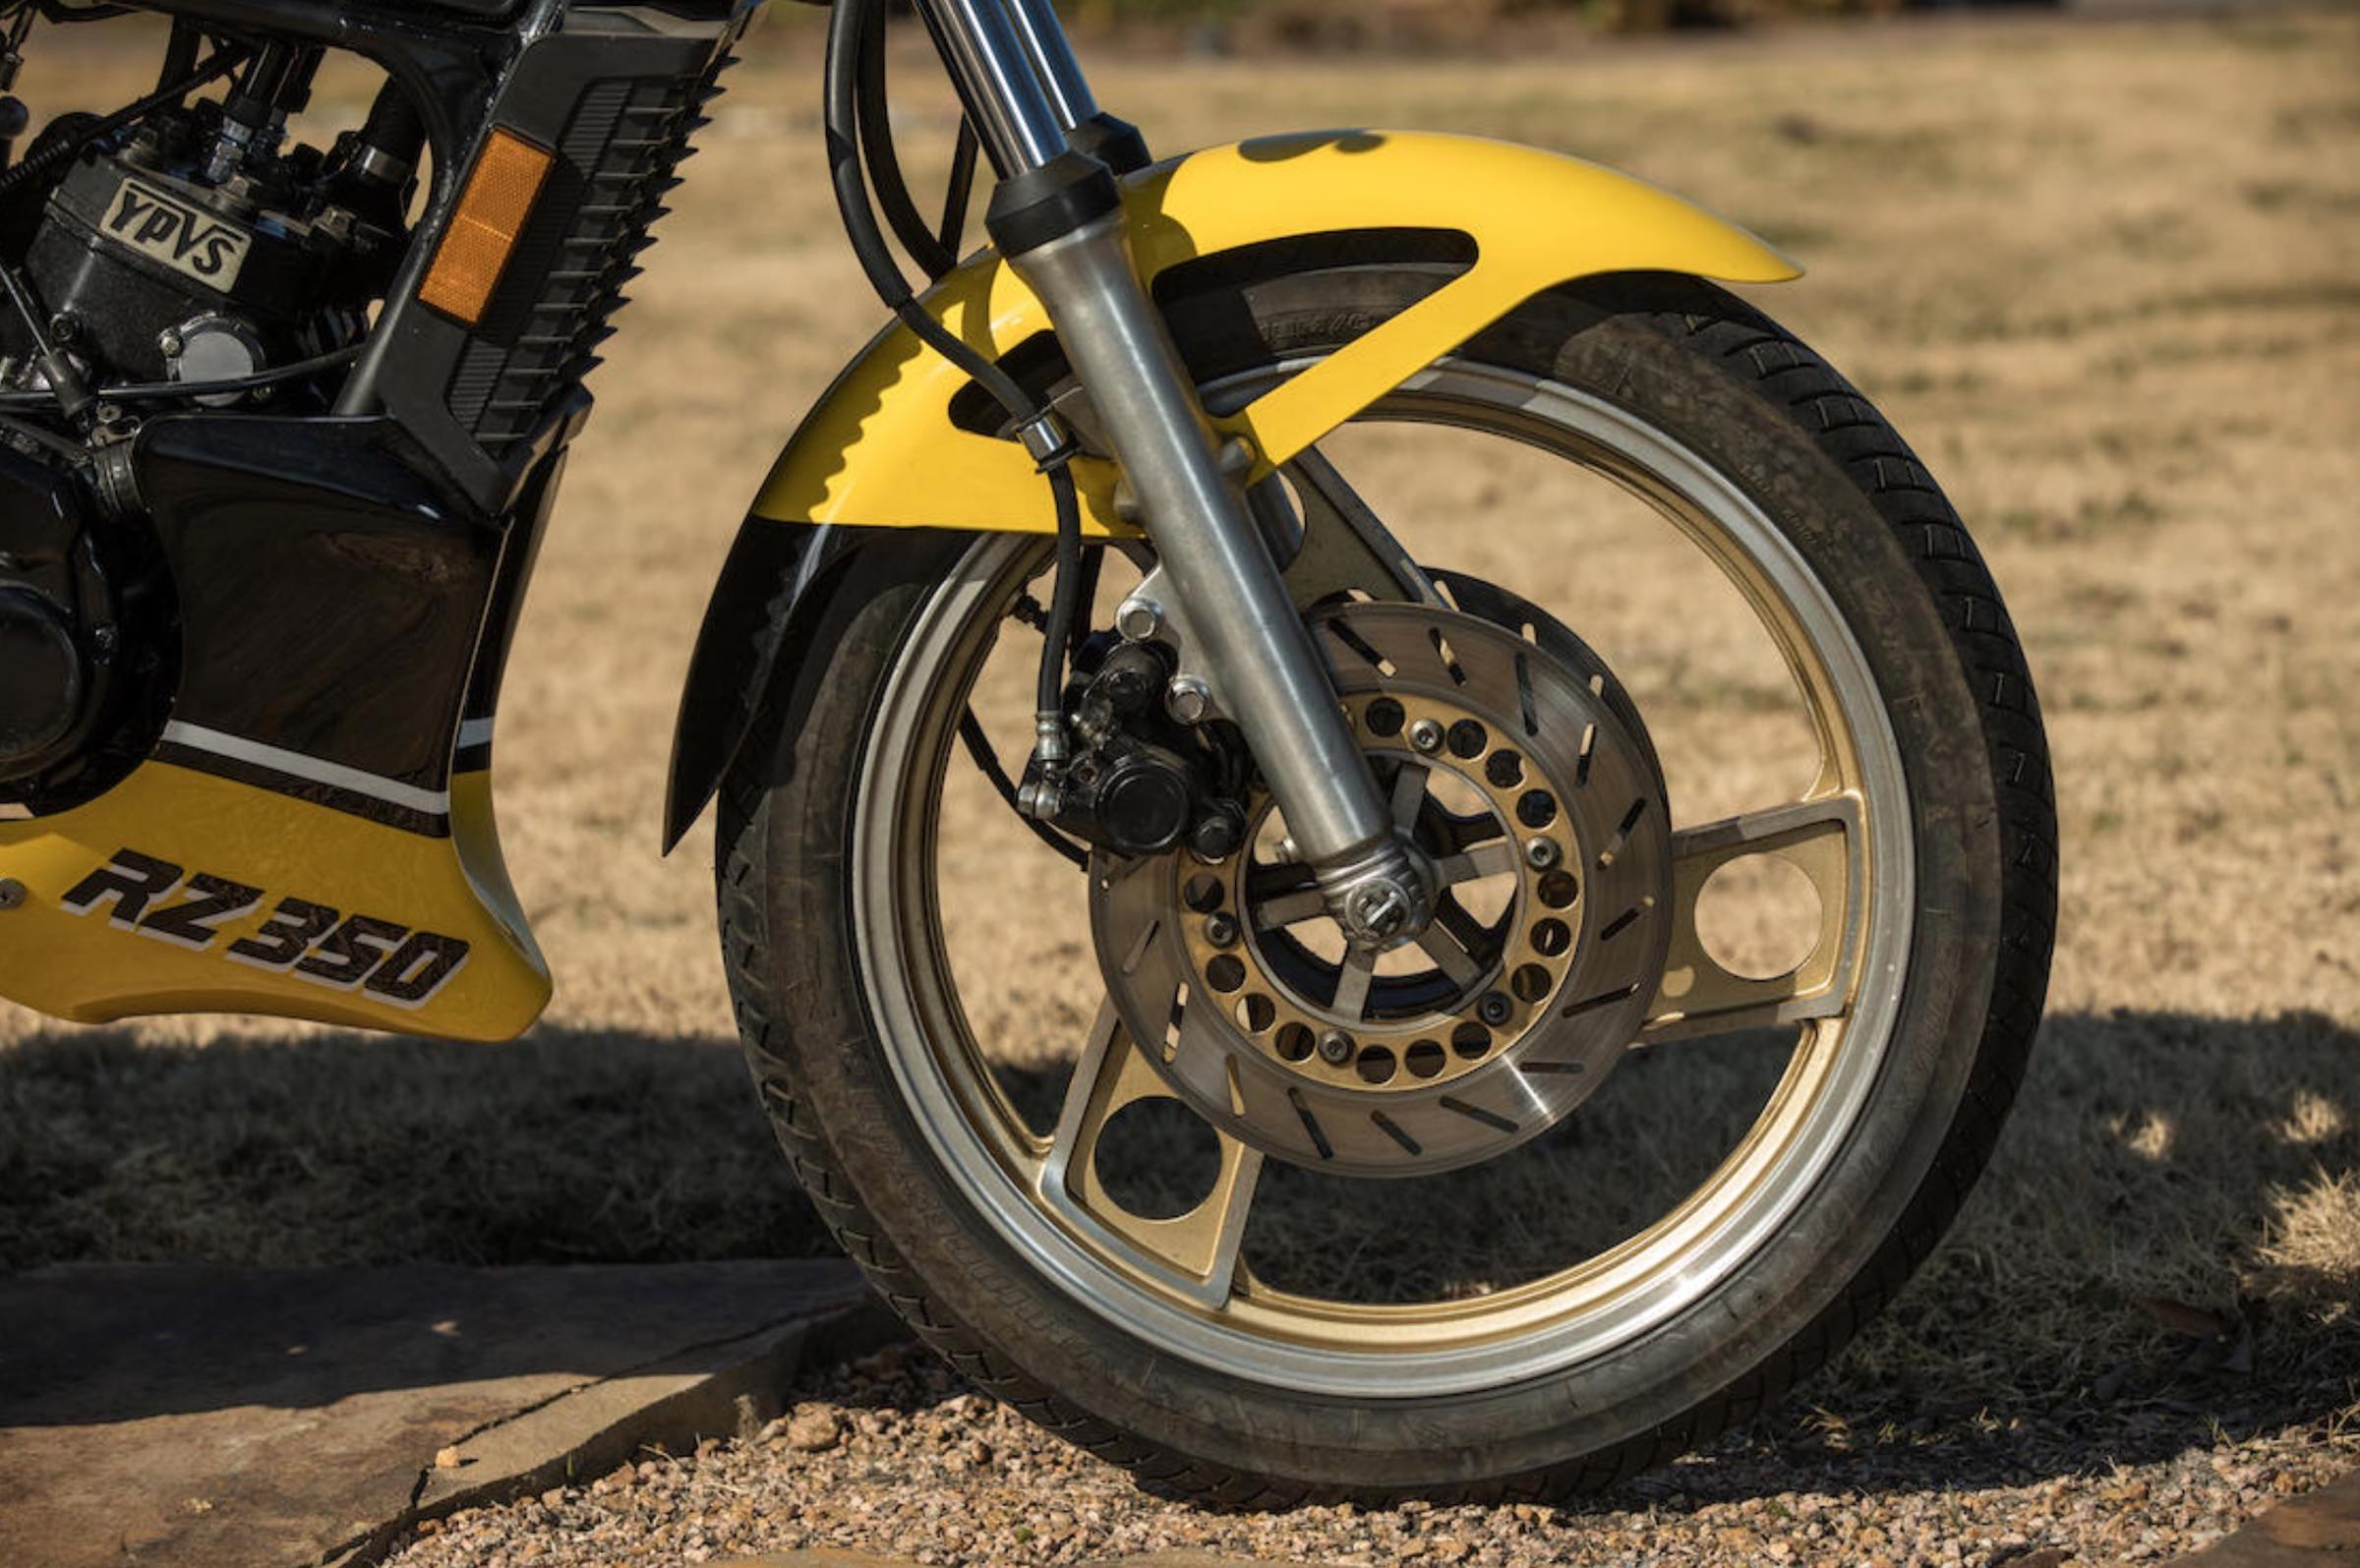 The Last (Legal) Two-Stroke Street Bike Sold In The USA - Yamaha